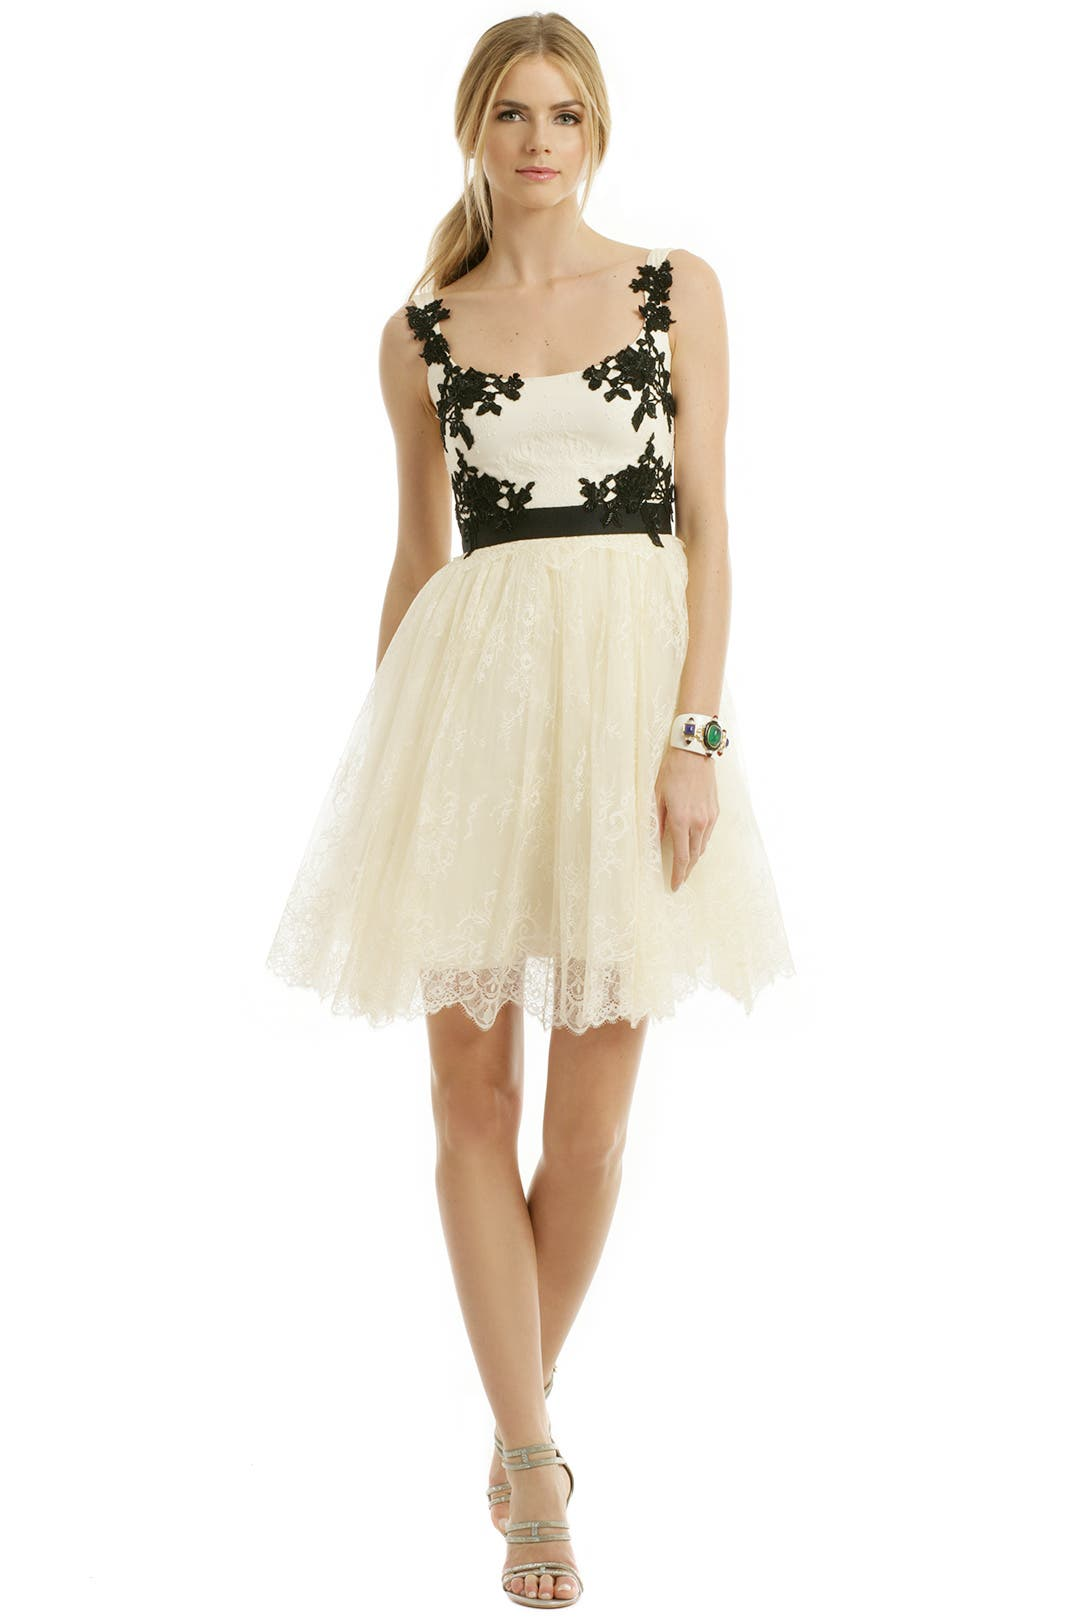 Anabelle Dress by Marchesa Notte for $30 - $50 | Rent the Runway